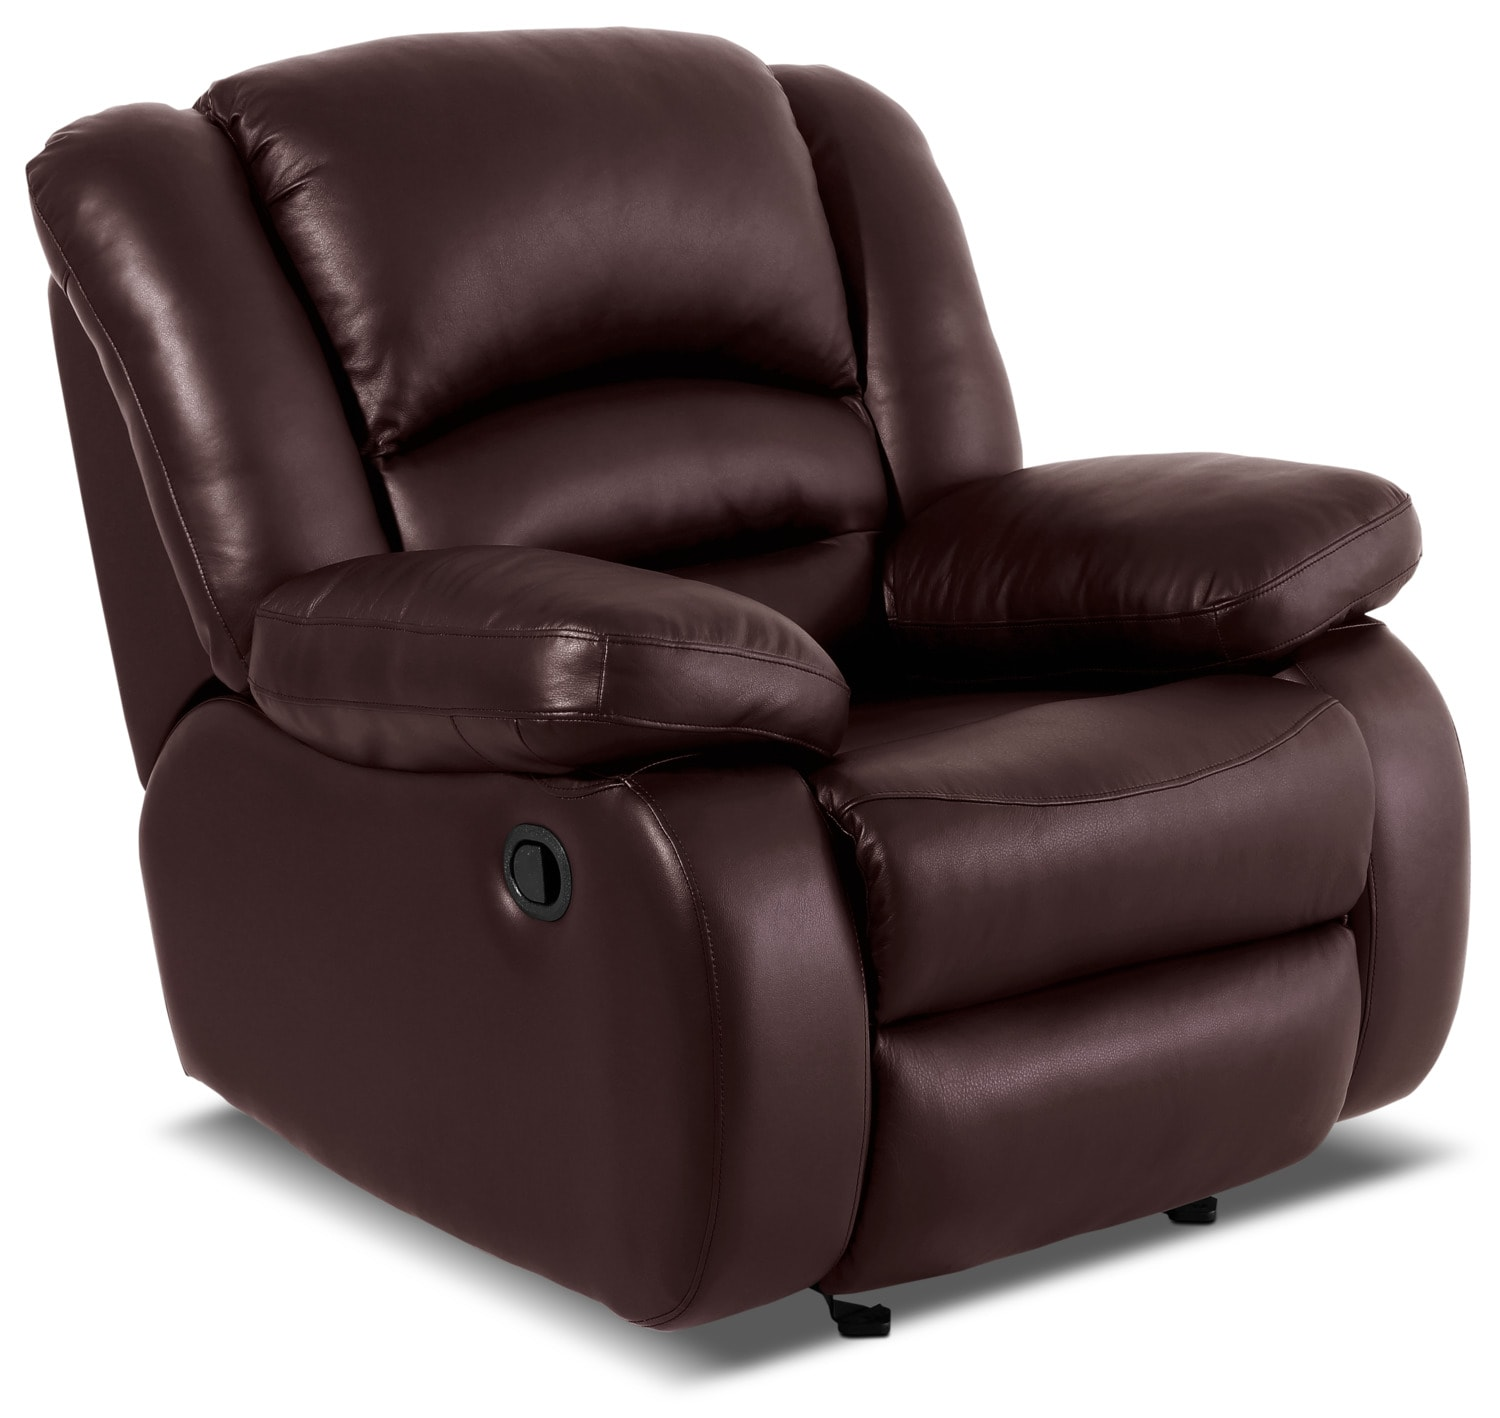 Toreno Genuine Leather Reclining Chair – Burgundy